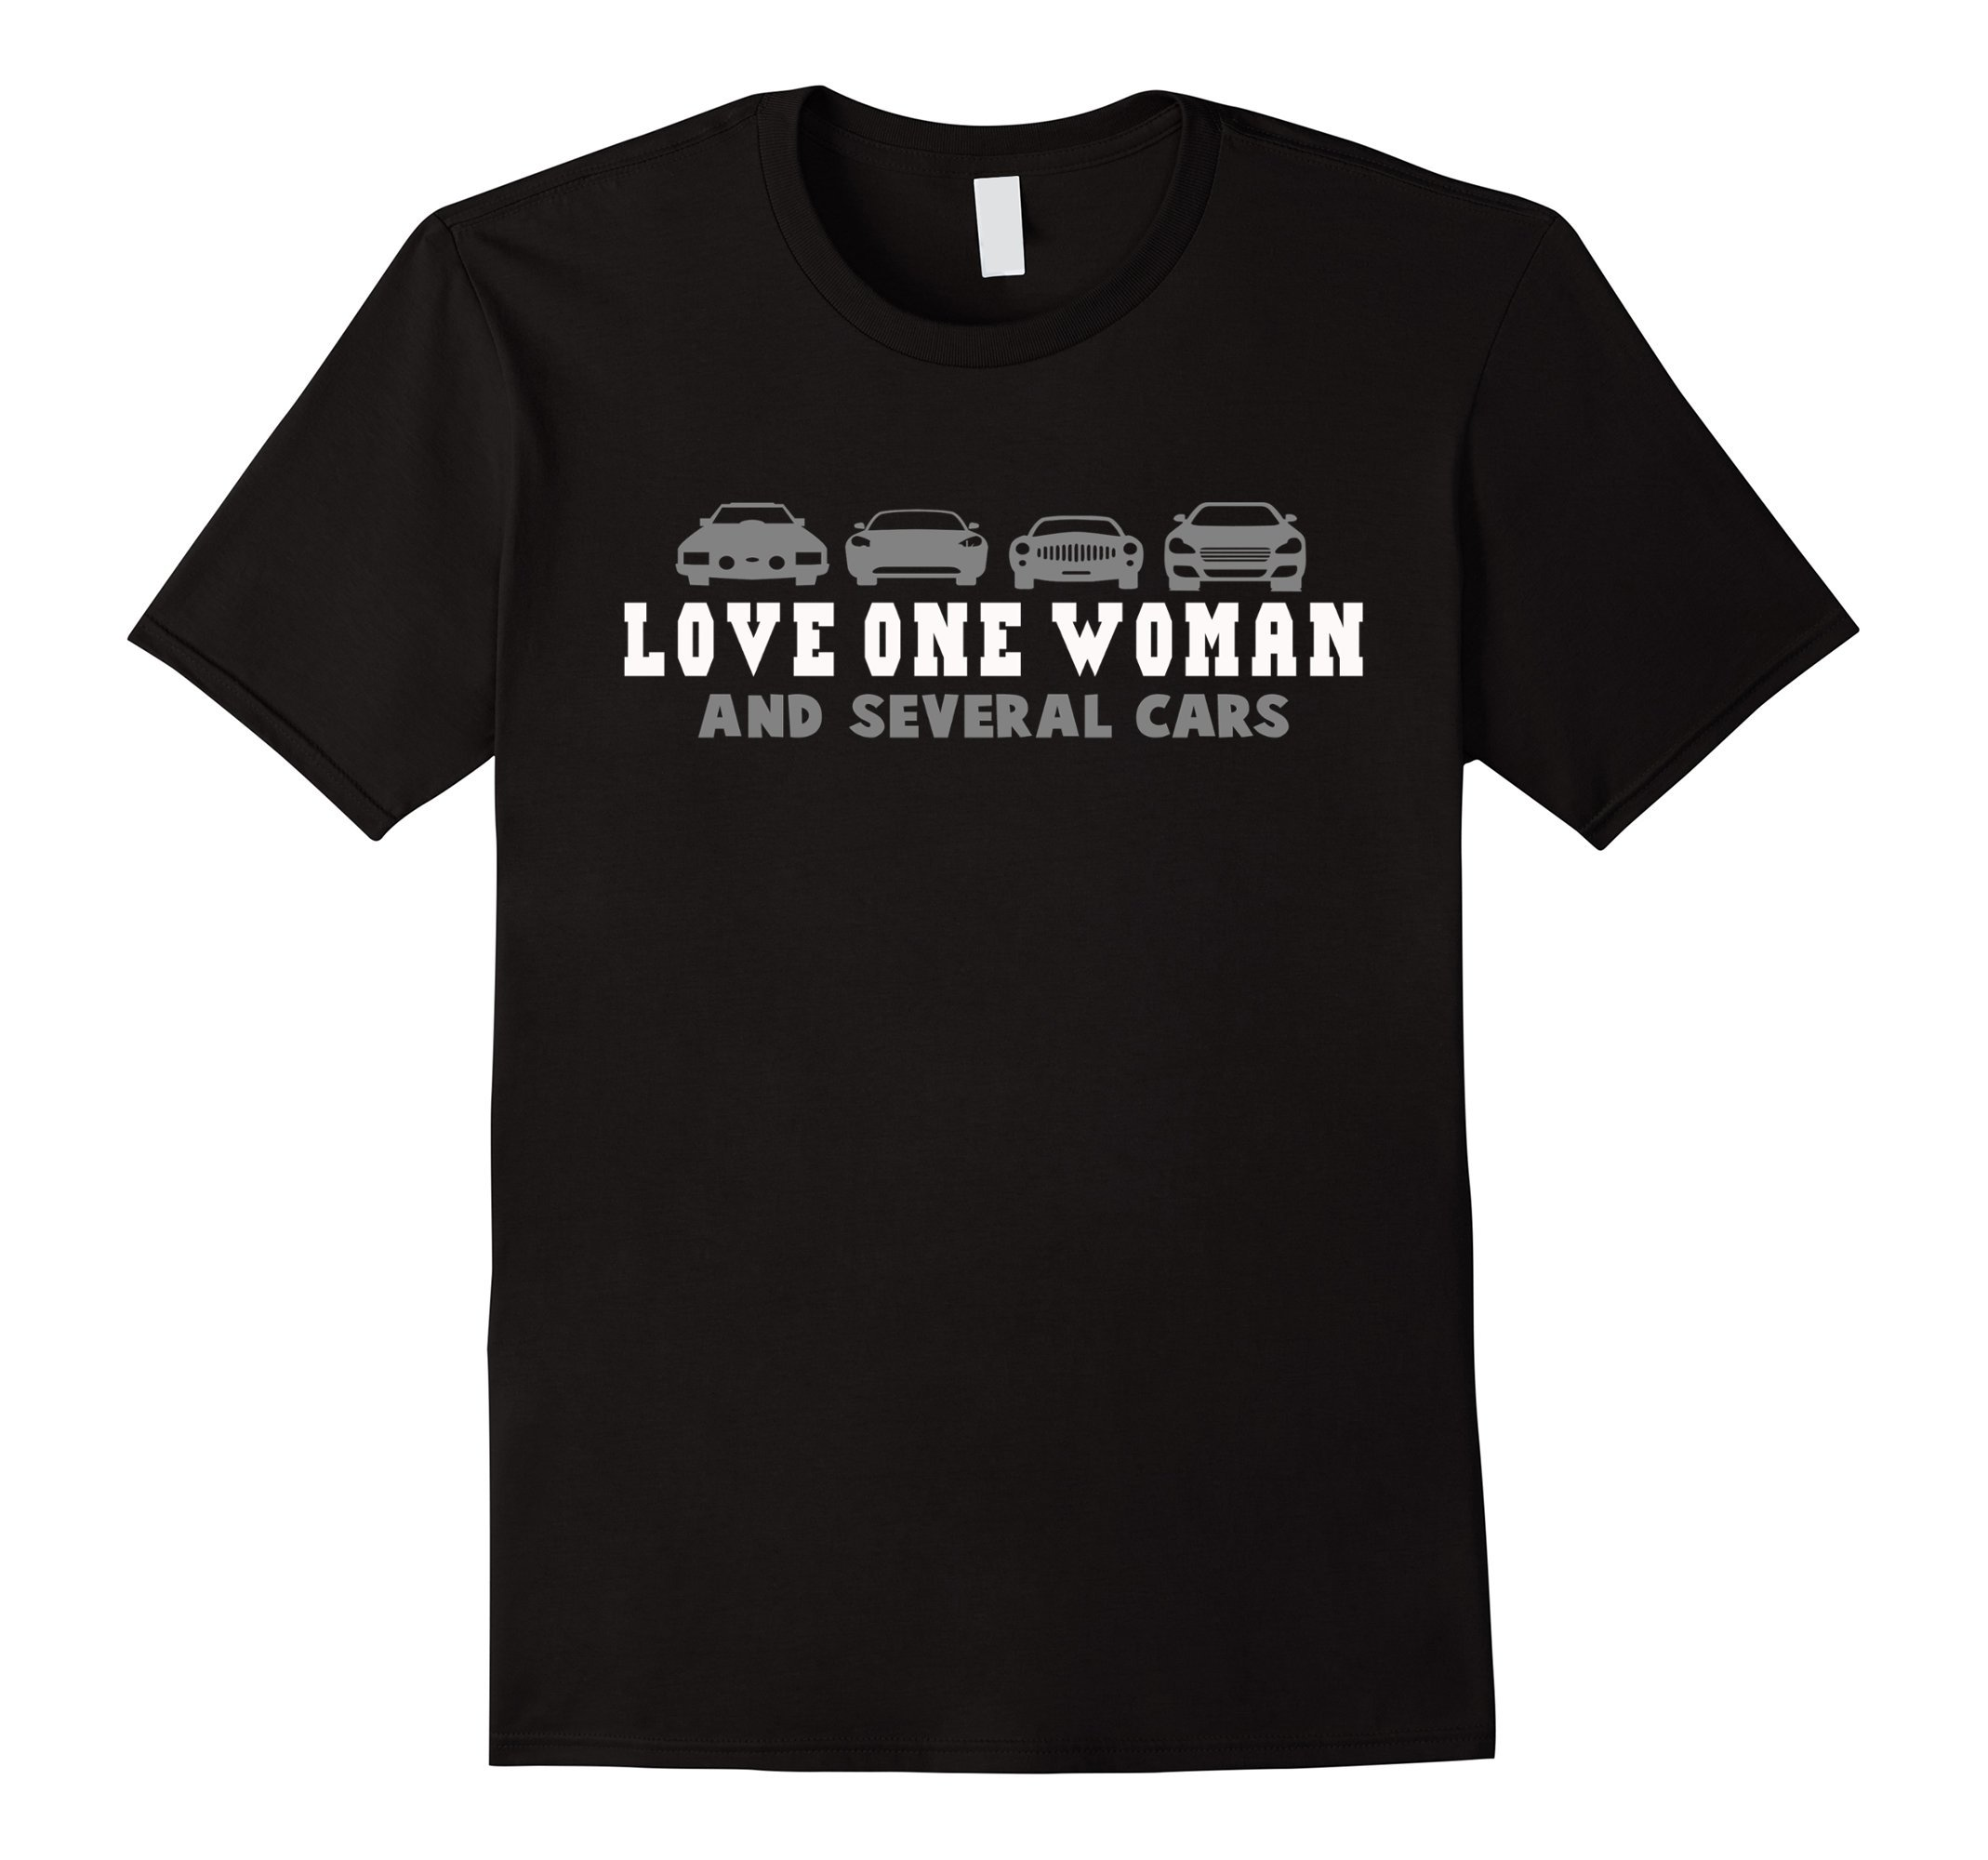 Love One Woman And Several Cars Novelty Gift T-shirt by Funny Car Love Shirt (Image #1)